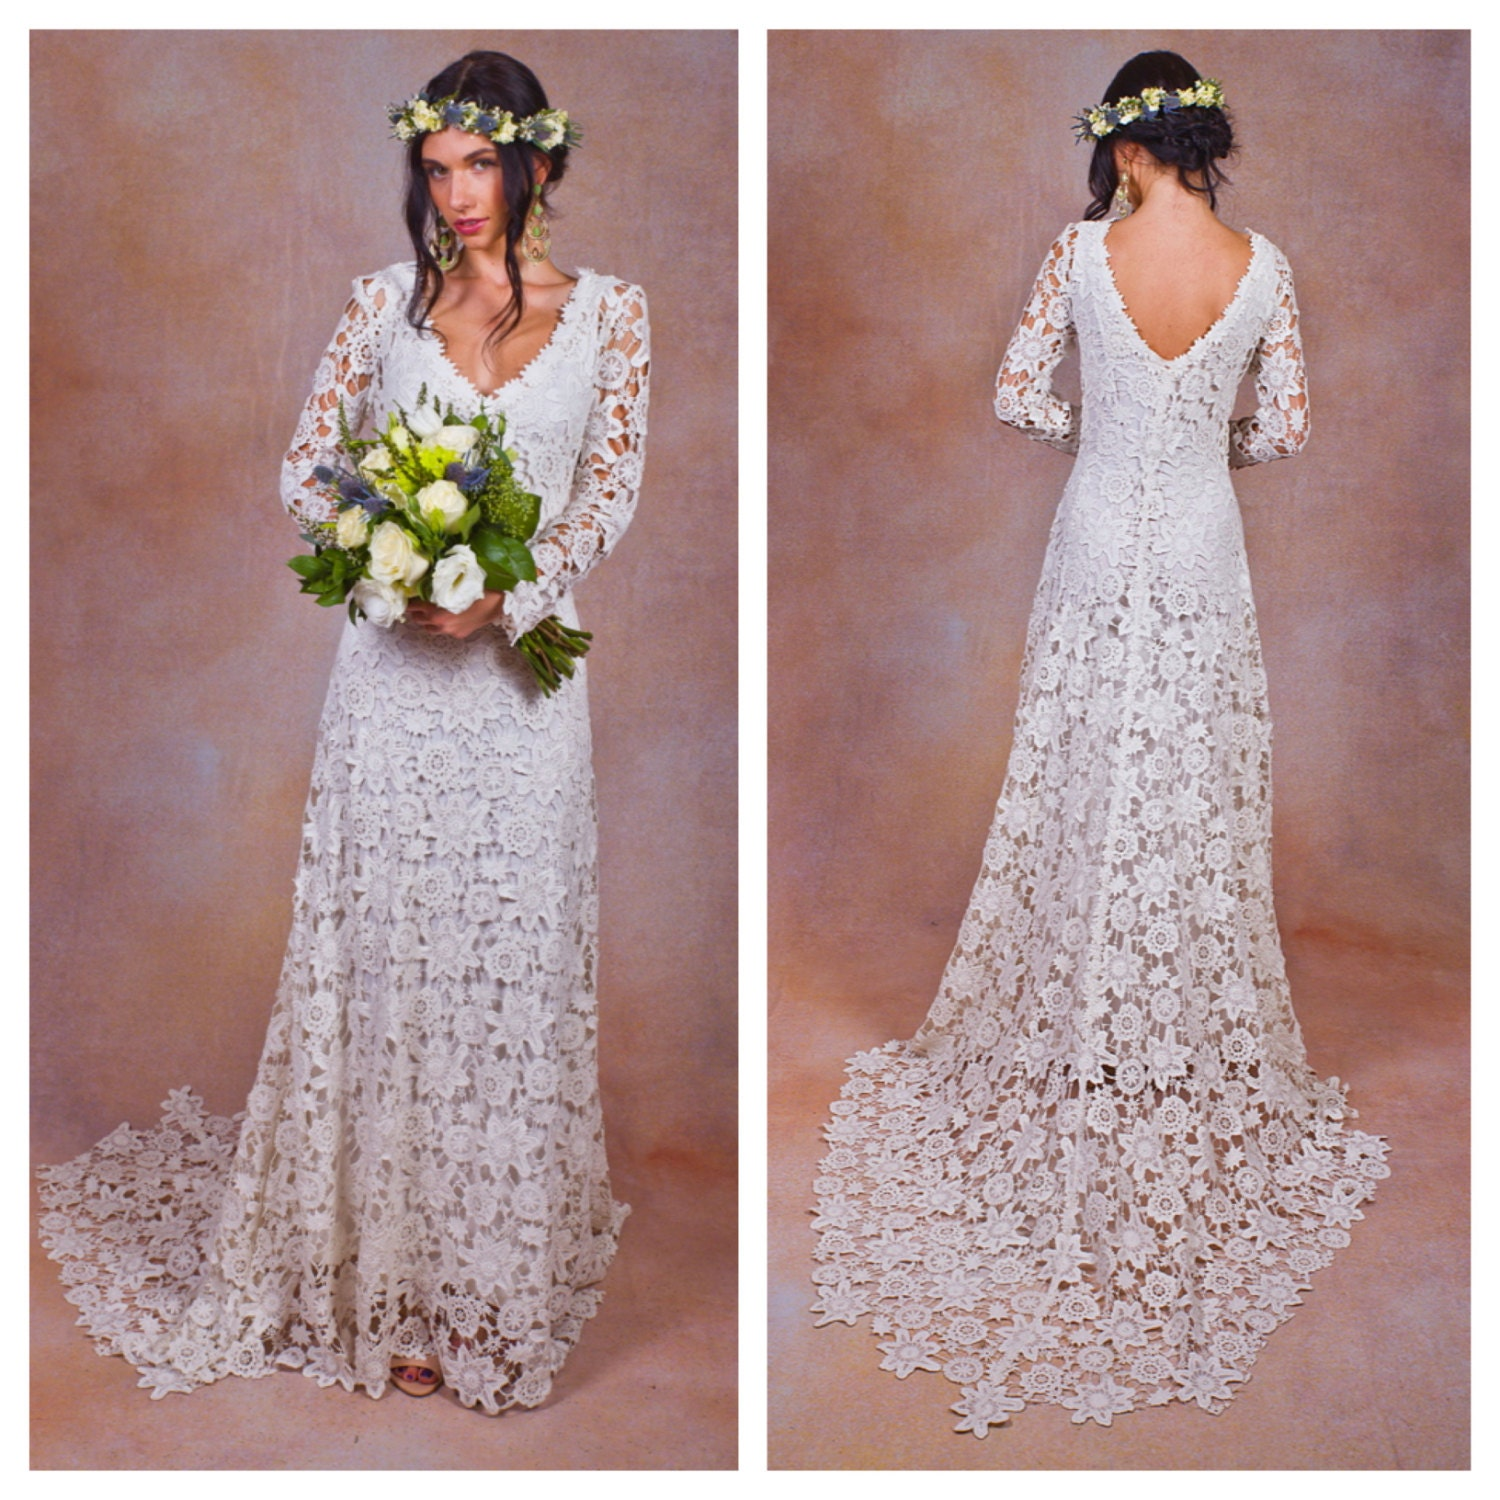 Rustic boho wedding dress simple crochet lace bohemian for Bohemian wedding dress shops